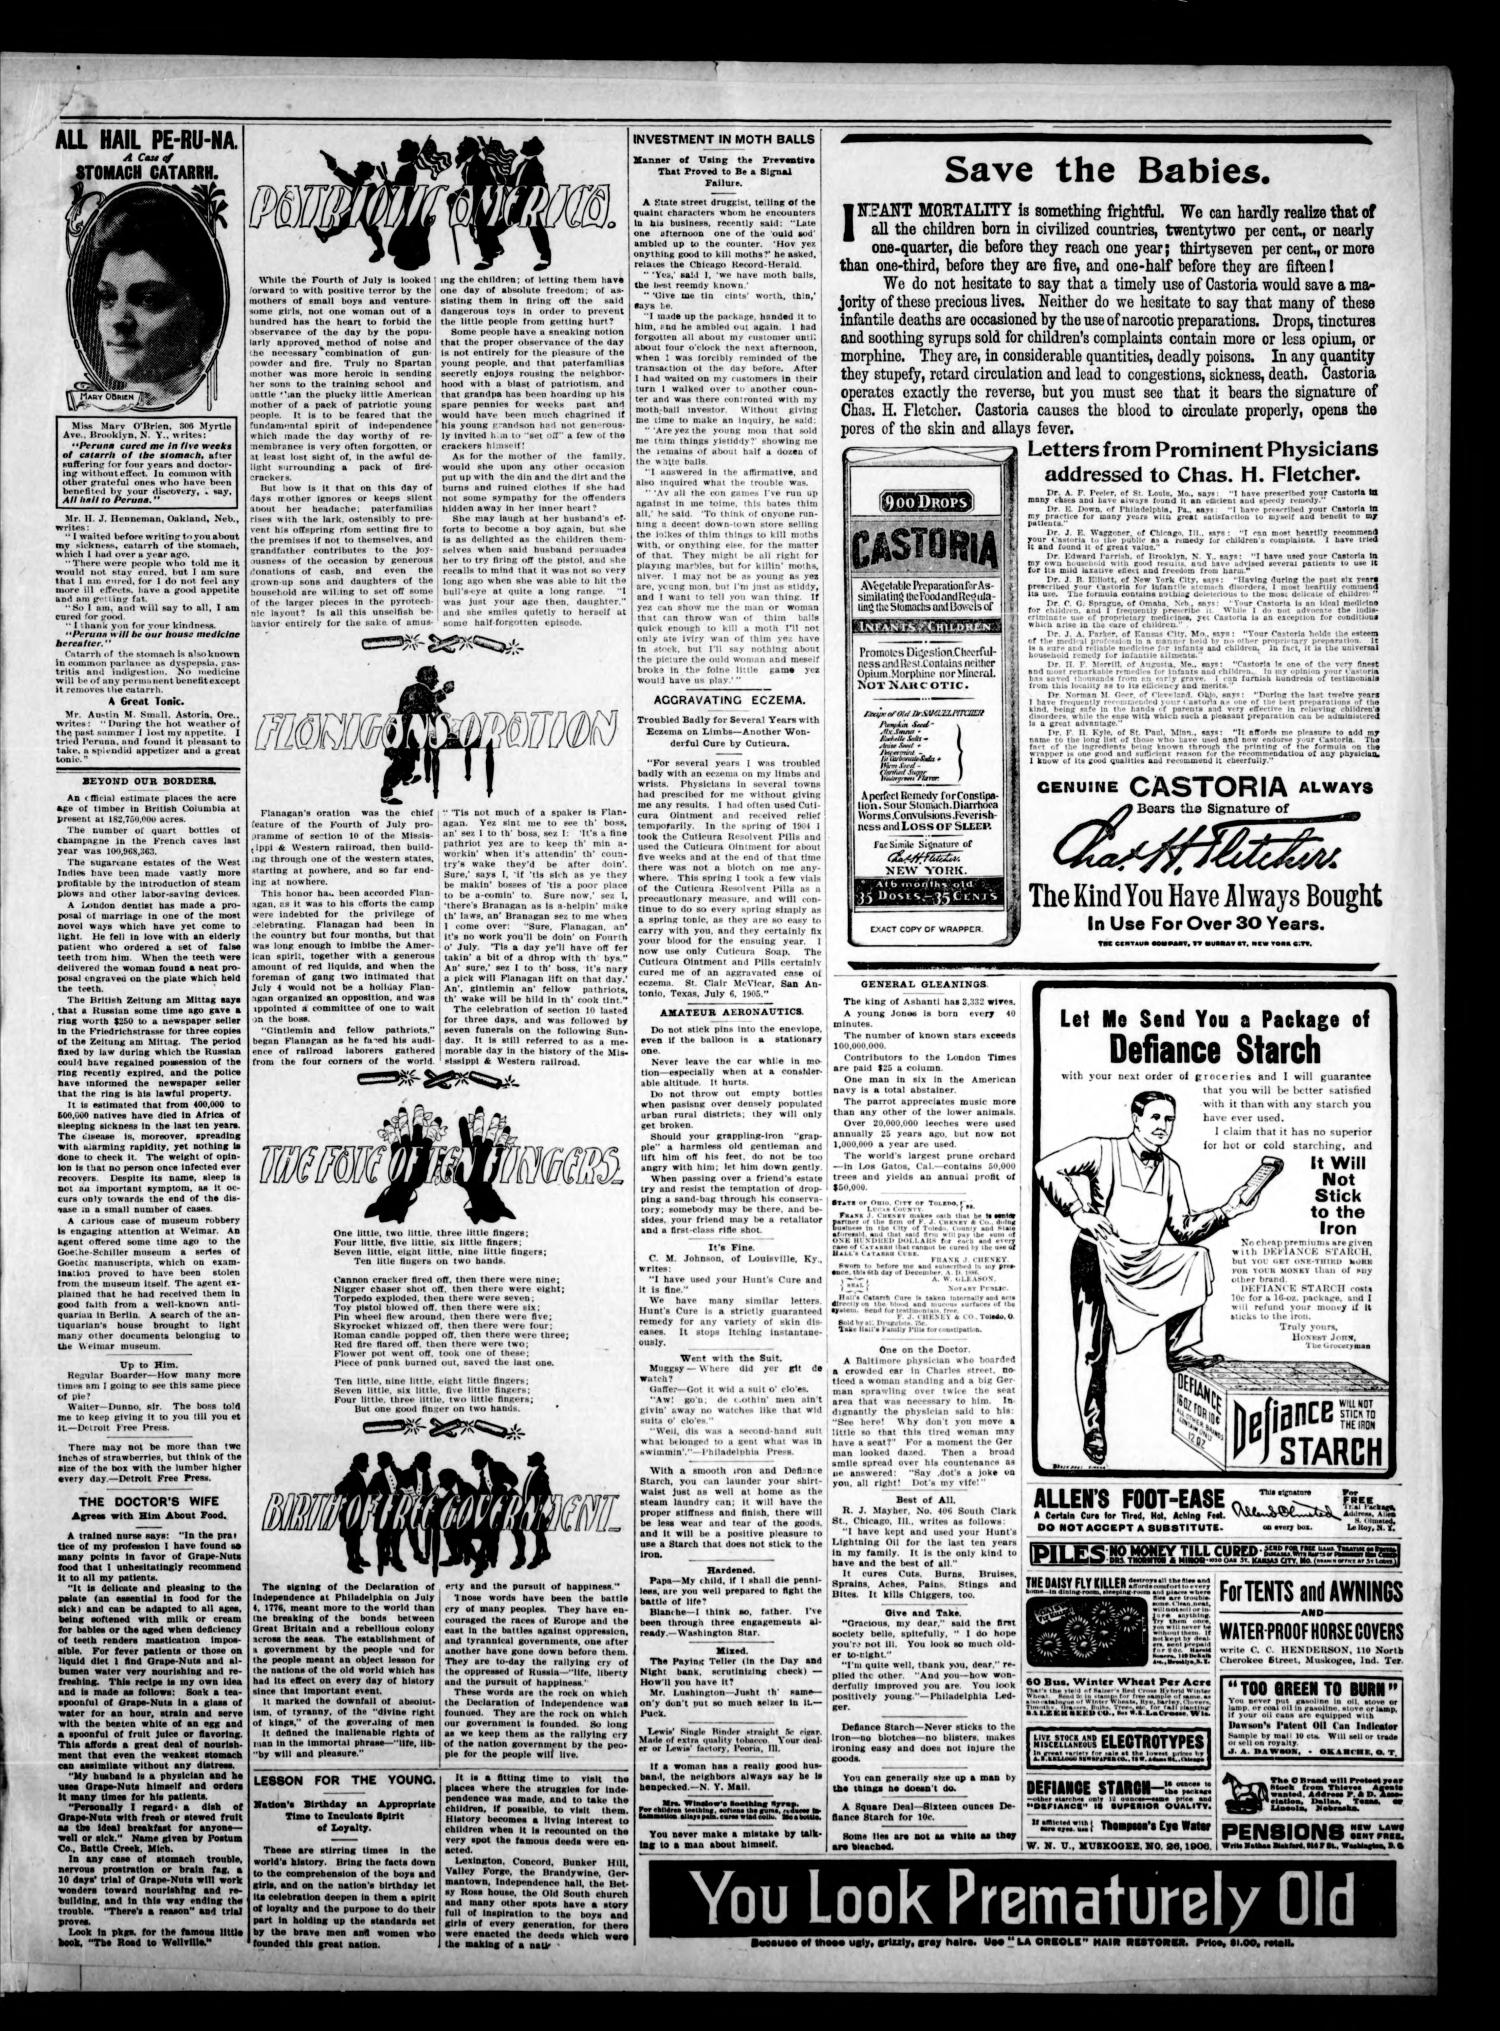 The Claremore Messenger. (Claremore, Indian Terr.), Vol. 12, No. 28, Ed. 1 Friday, July 13, 1906                                                                                                      [Sequence #]: 3 of 8